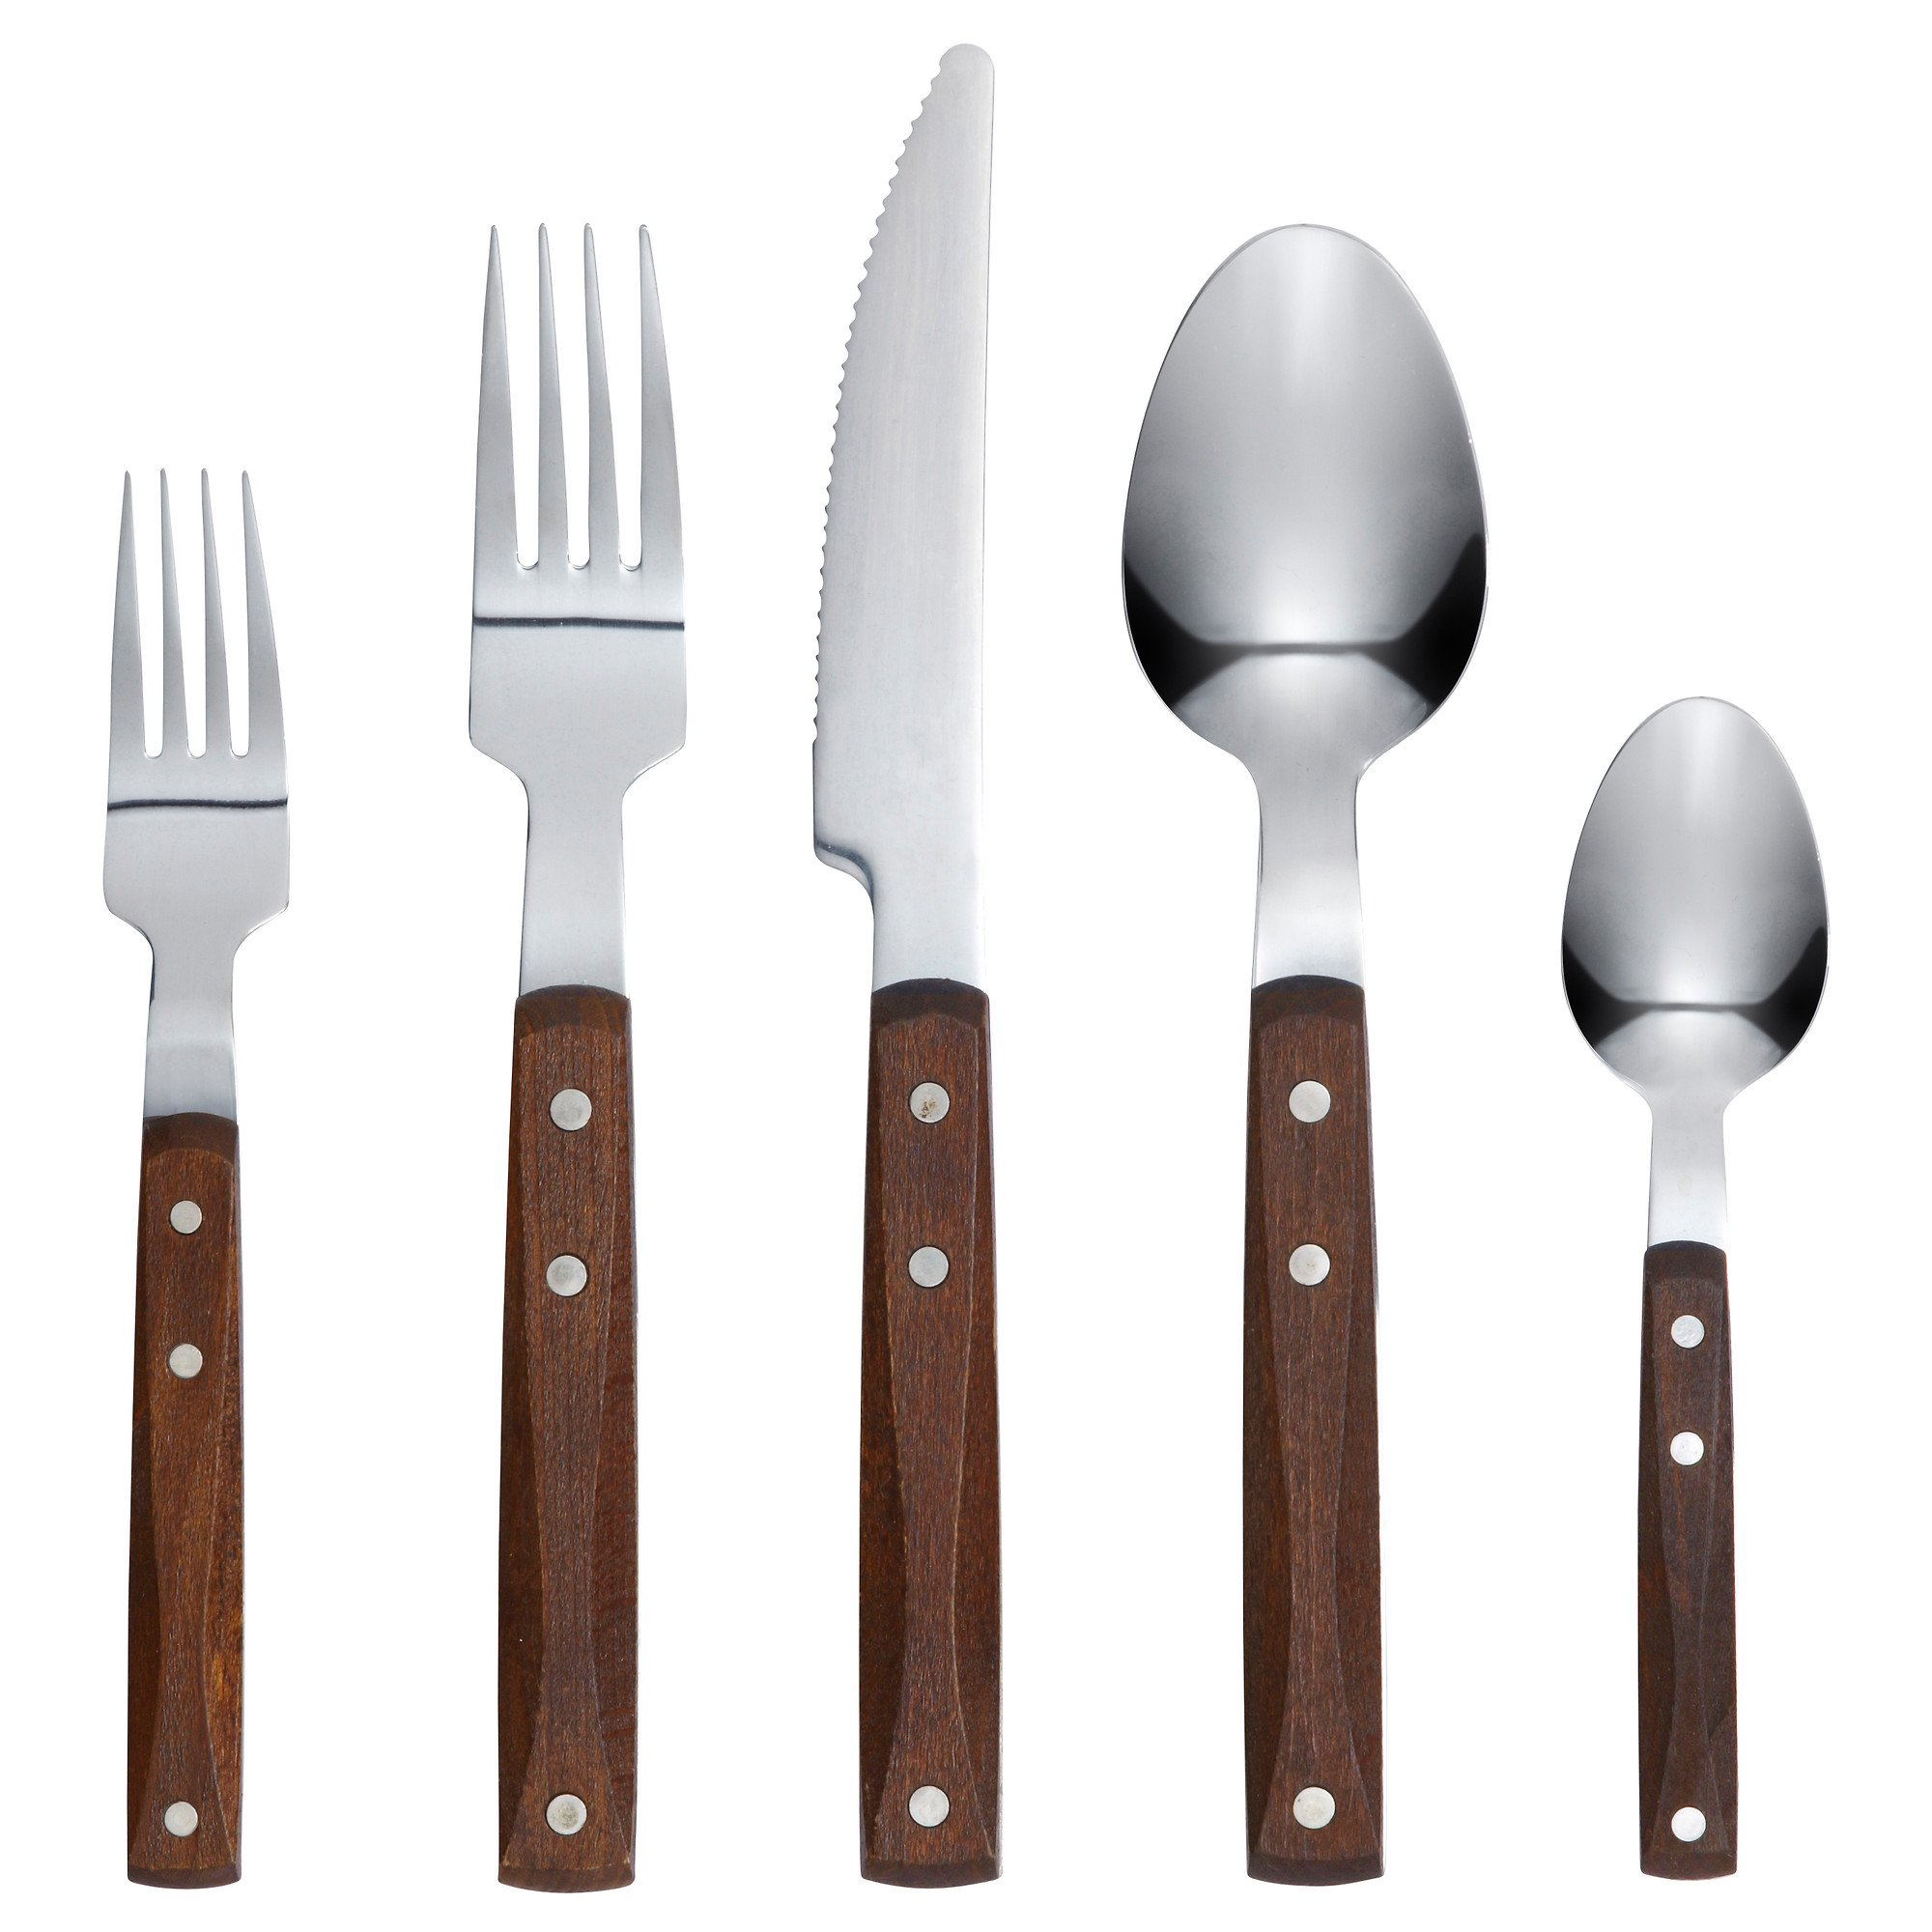 IKEA RUSTIK Wooden Handle Stainless Steel Flatware Tableware Set - 20 Piece Place Setting Silverware - Includes Fork Knife Spoon Teaspoon Dessert / Salad Fork + 100% Cotton Napkins - Service for 4